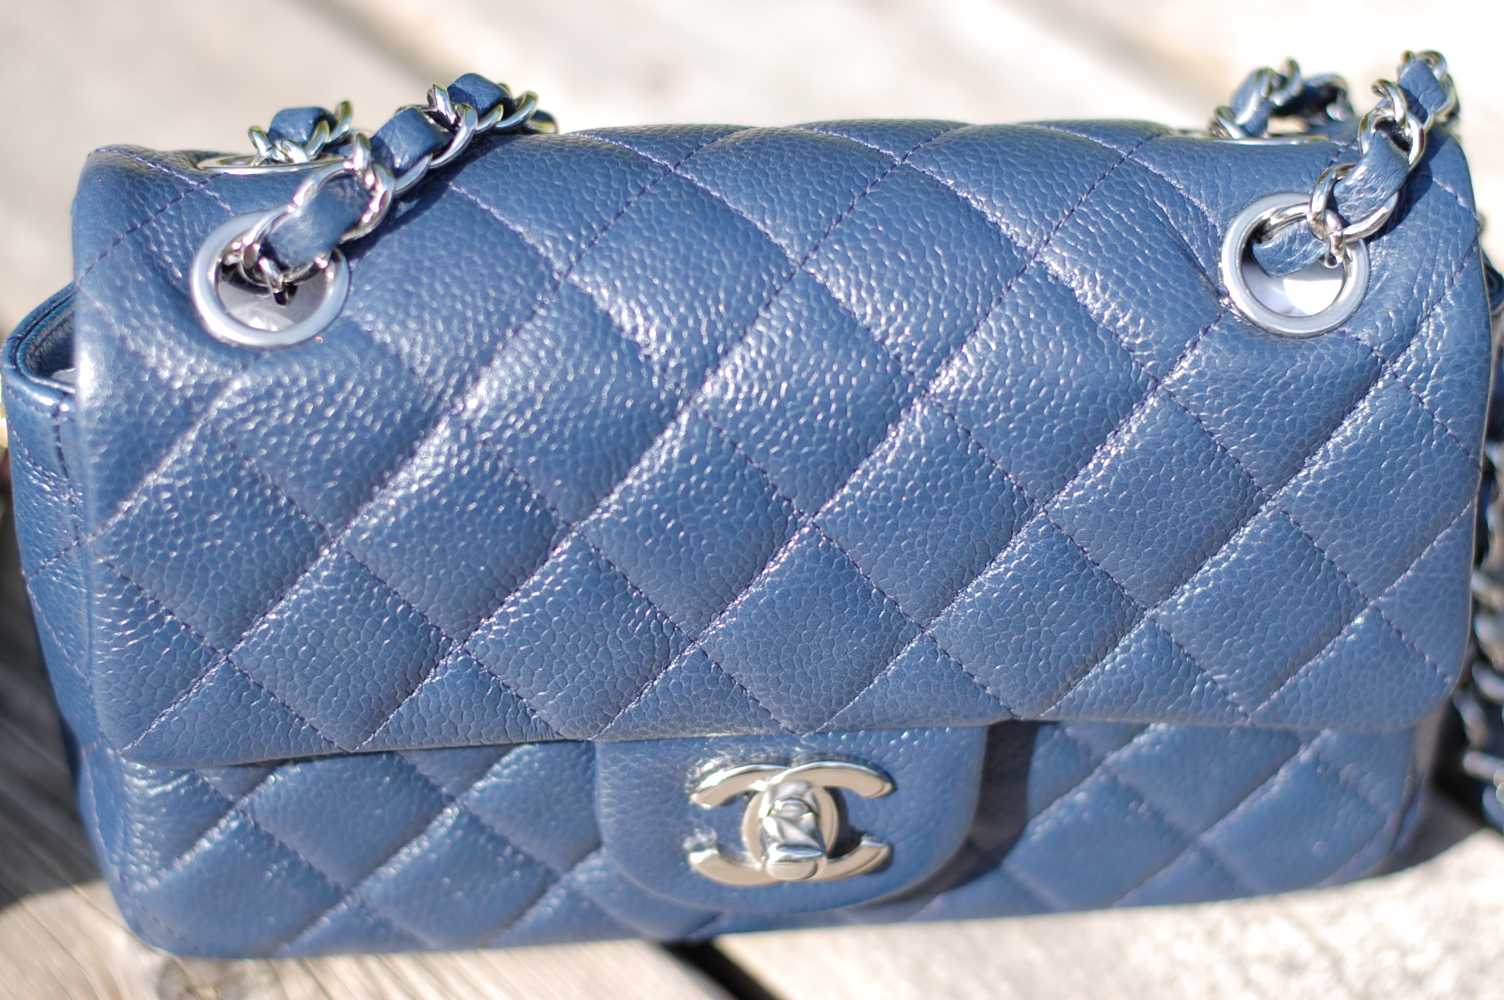 423b9e8445eb Brand: Chanel Style: A65055 (old) New is A69900 Dimensions: 5″H x 7 1/2″W x  2 1/2″D Chain drop: 23 1/2